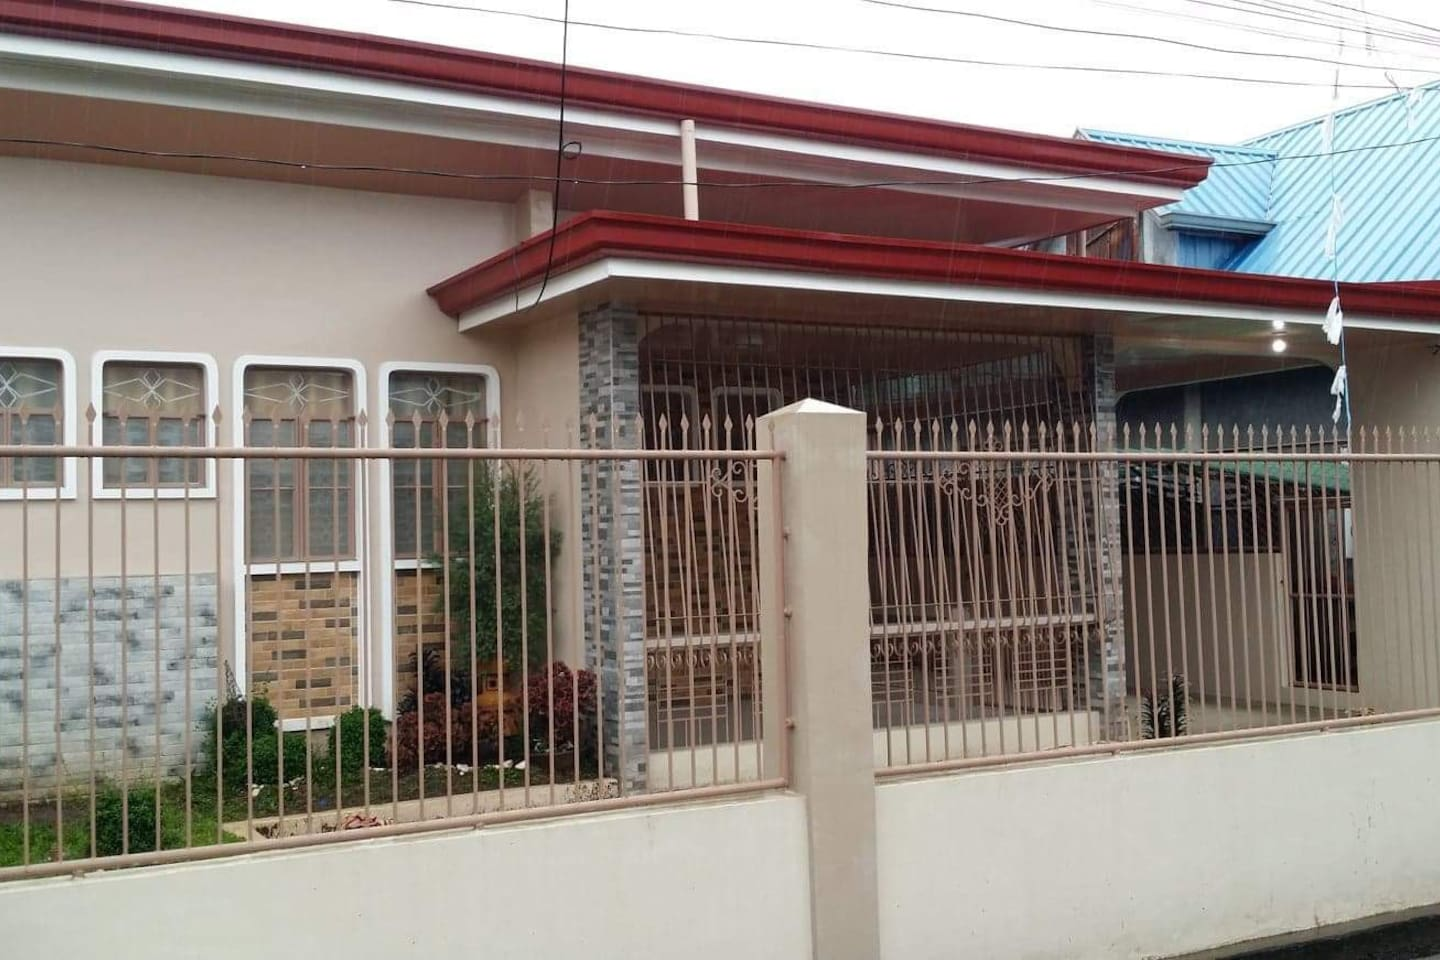 The property has private entrance, fenced and 2-car covered parking space. It is located in a barangay along main access road.